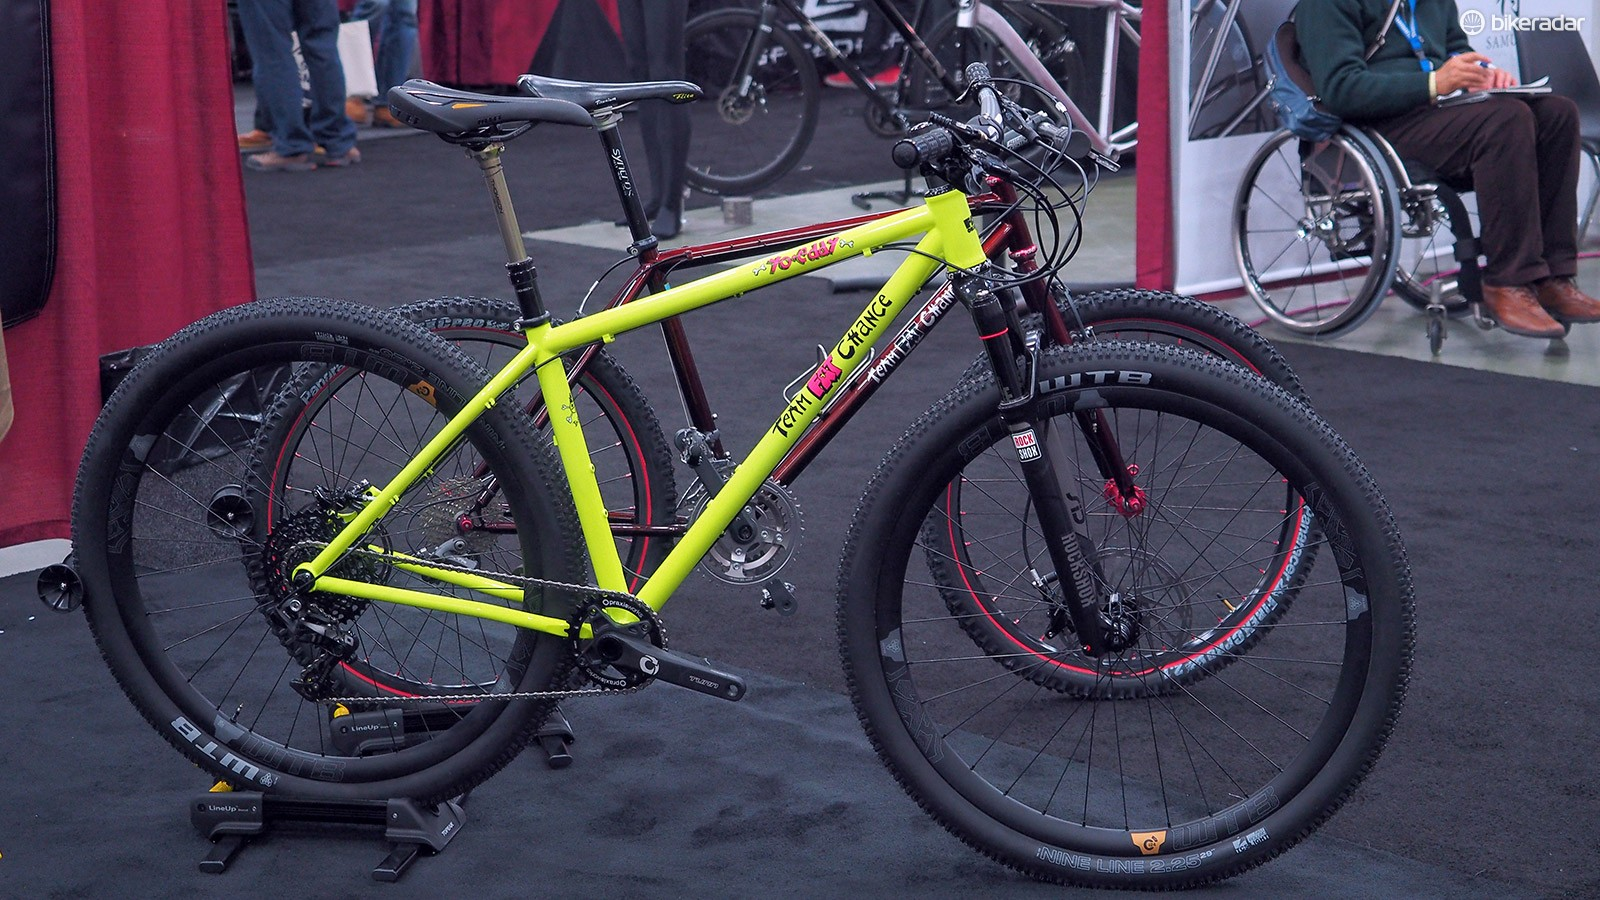 Fat City Cycles is back! Chris Chance has resurrected the iconic mountain bike brand with two new Yo Eddy hardtails, both modern interpretations of the classic original